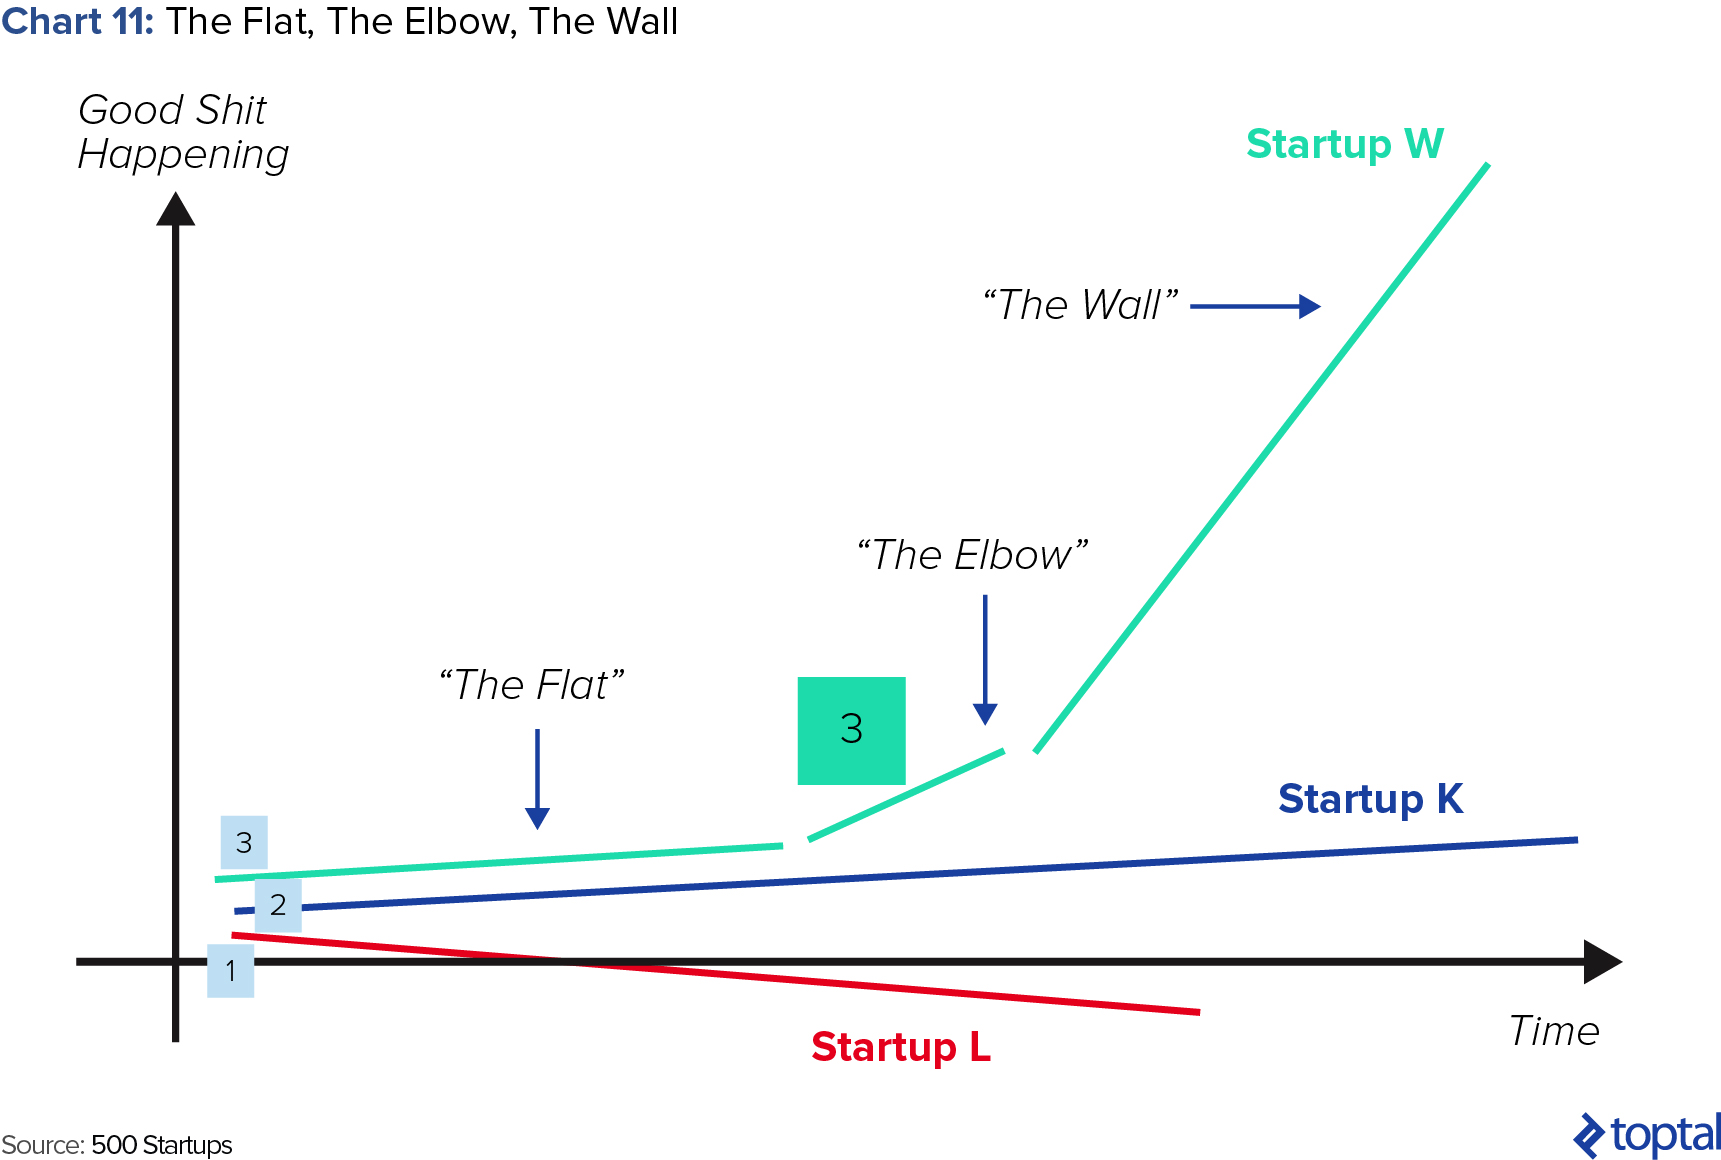 Chart 11: The Flat, The Elbow, The Wall